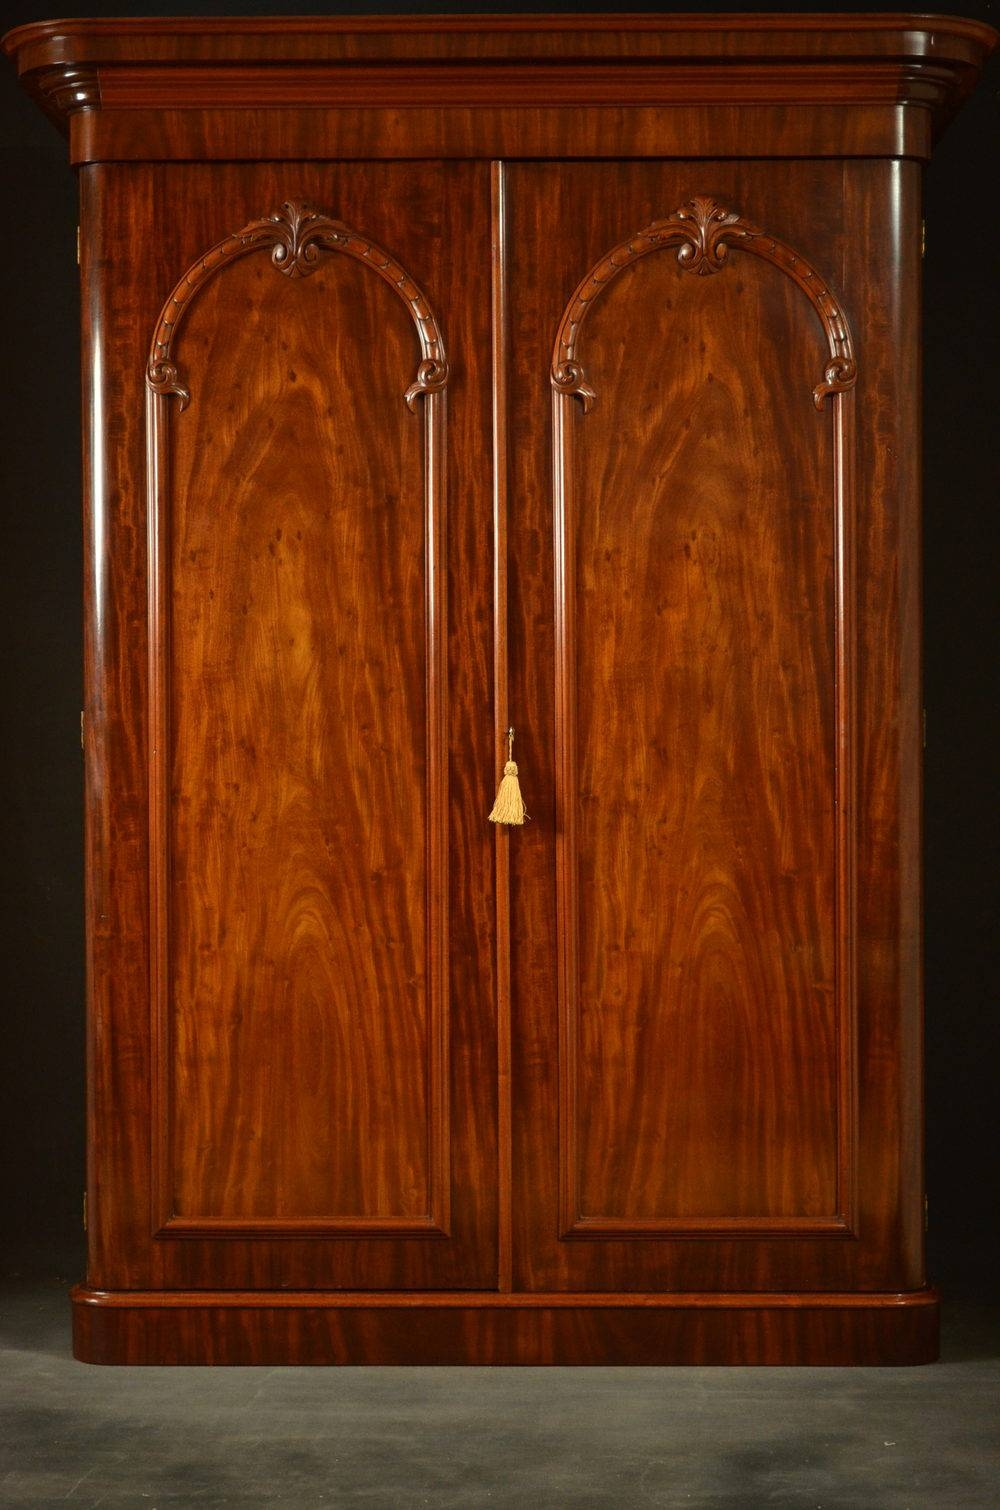 Victorian Wardrobe - Antiques Atlas intended for Victorian Wardrobes (Image 13 of 15)